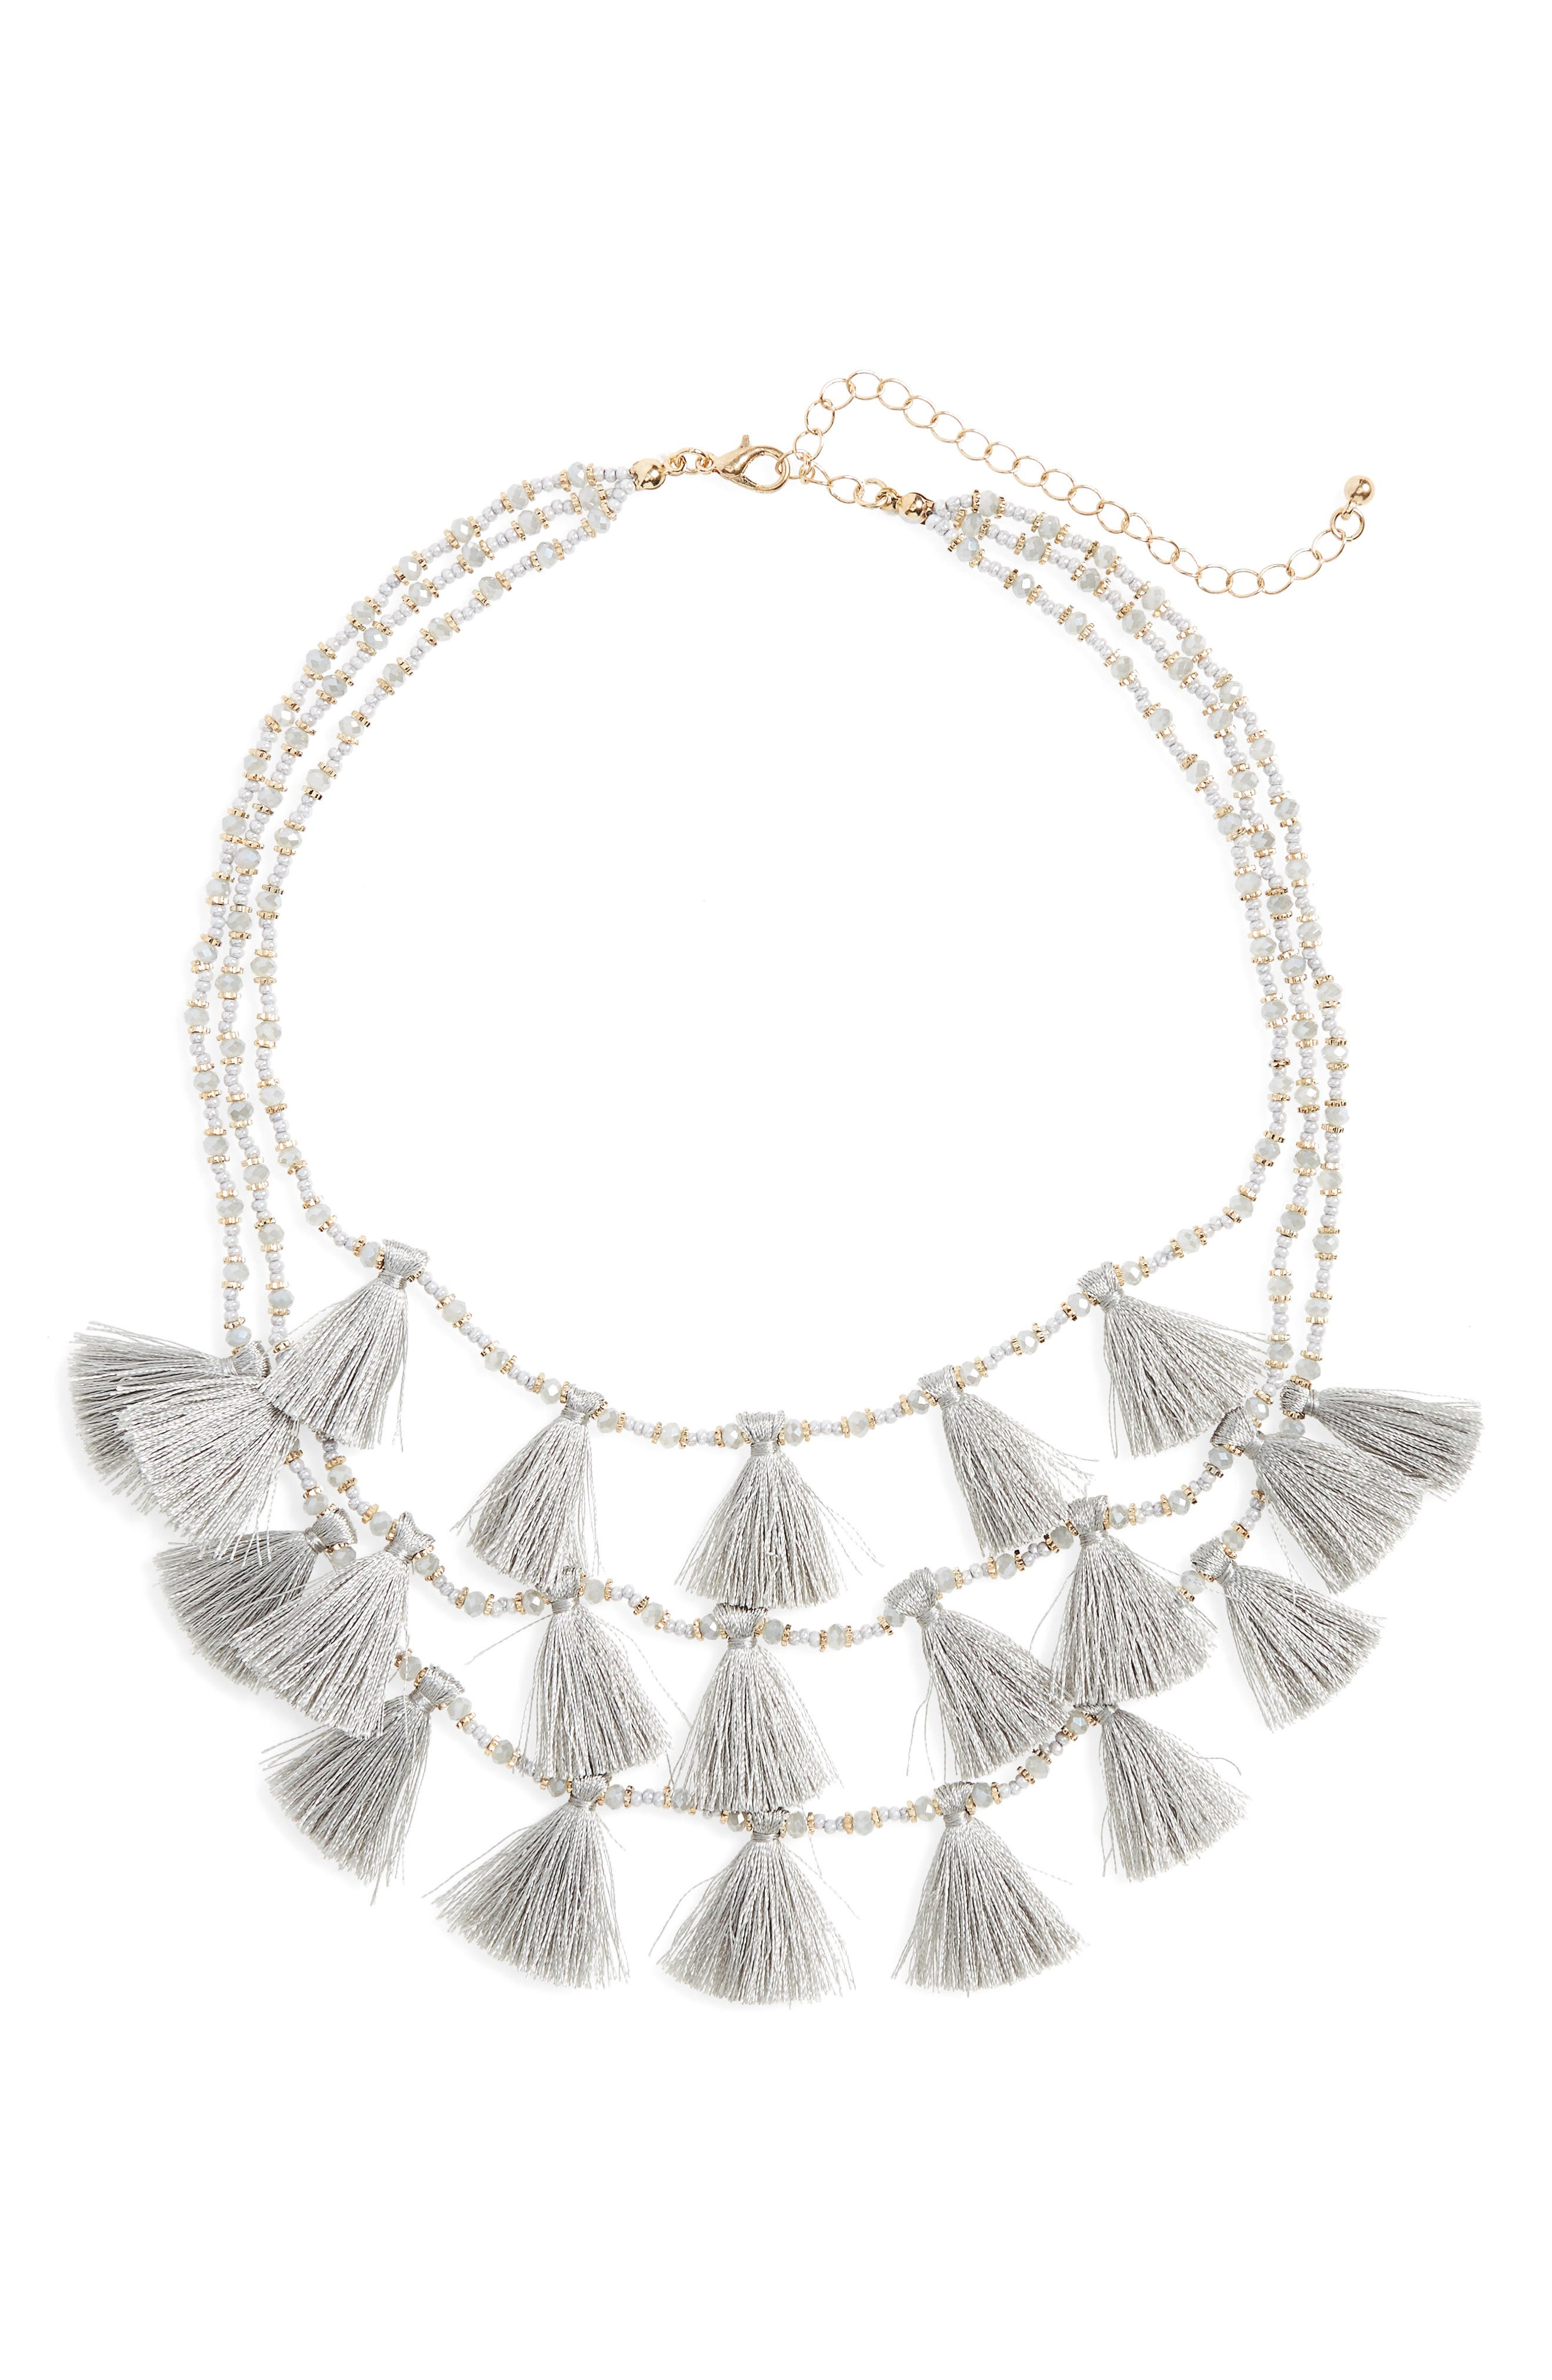 Tassel Statement Necklace,                         Main,                         color, Gray